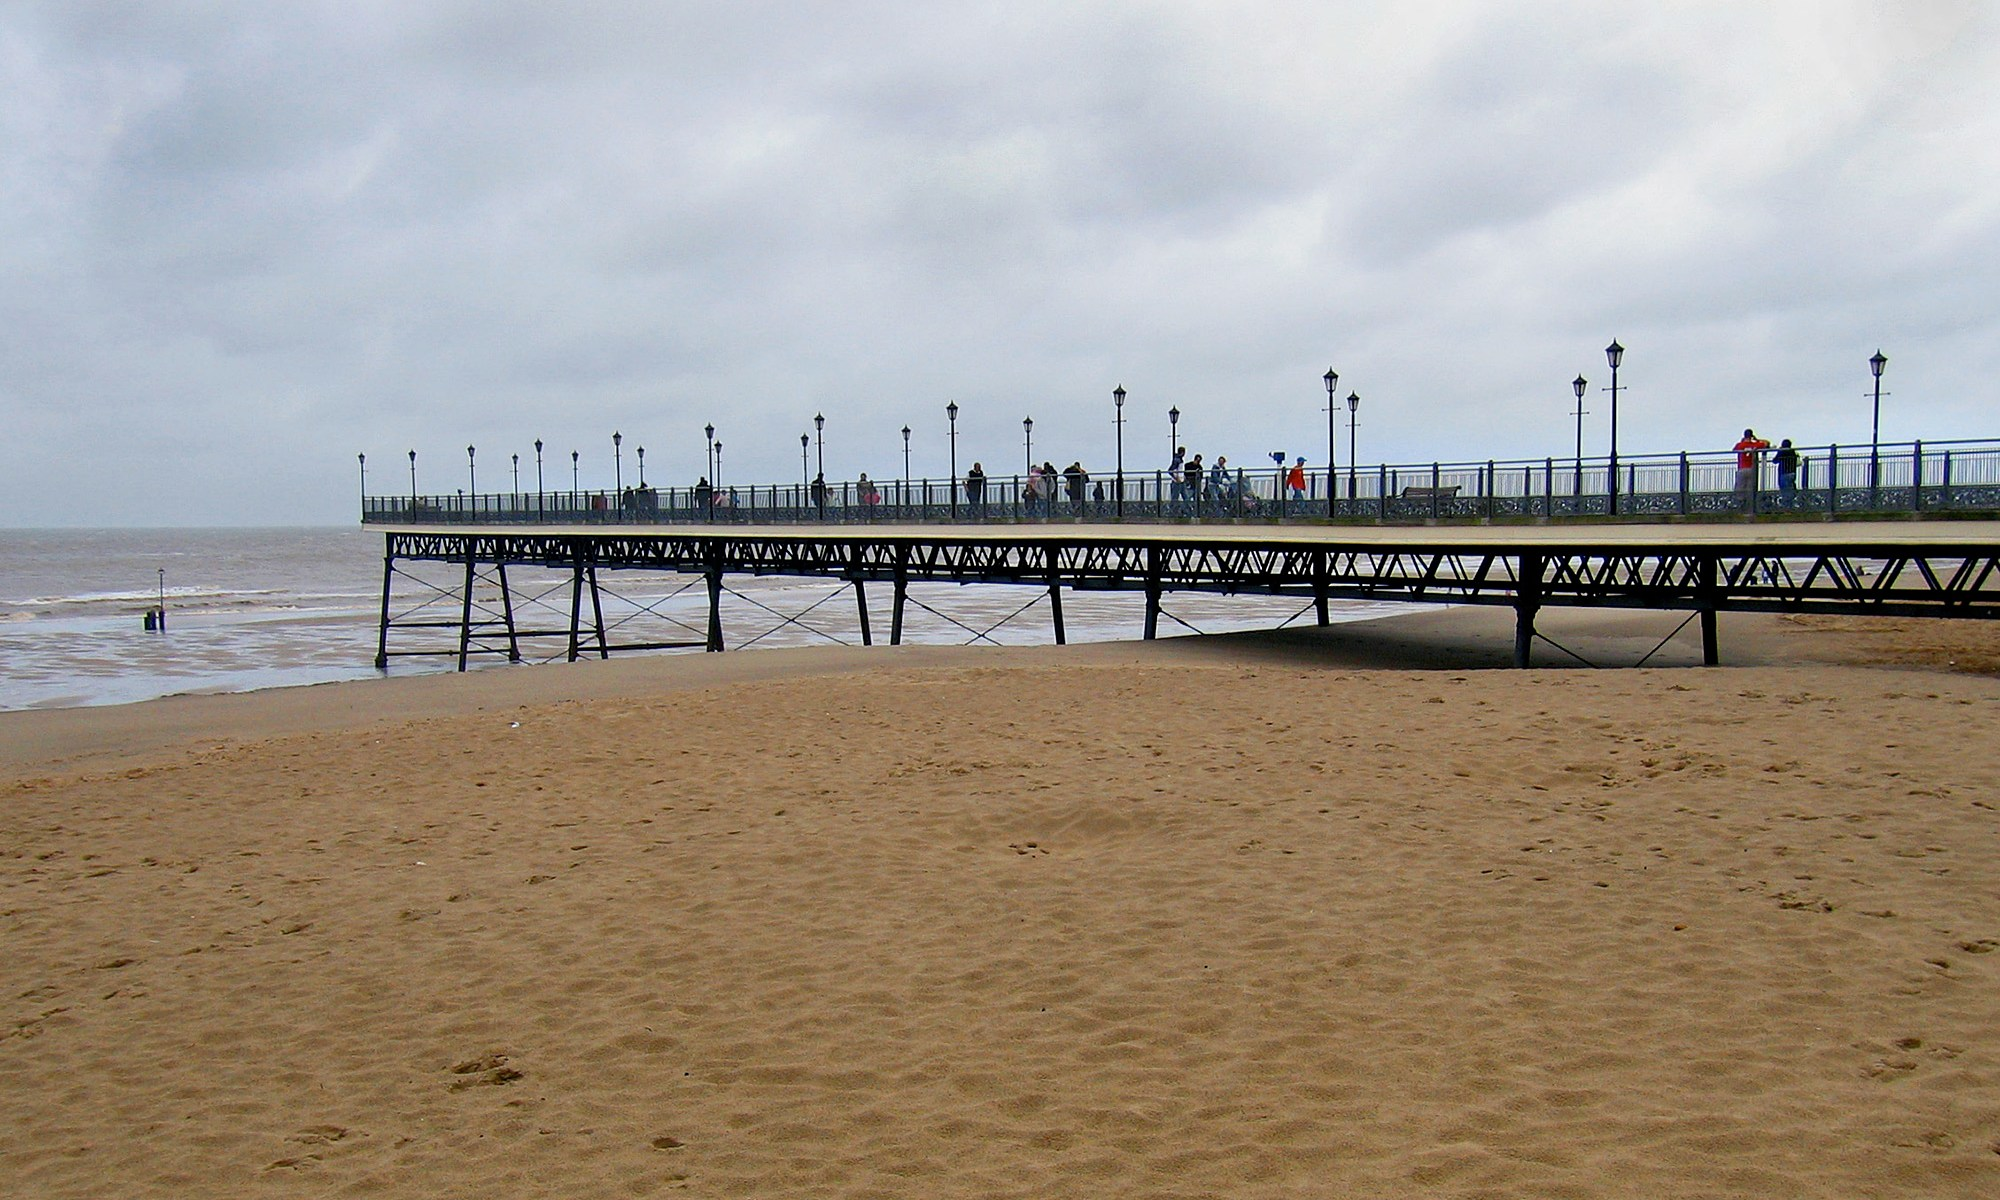 Skegness Pier - English Seaside Resort